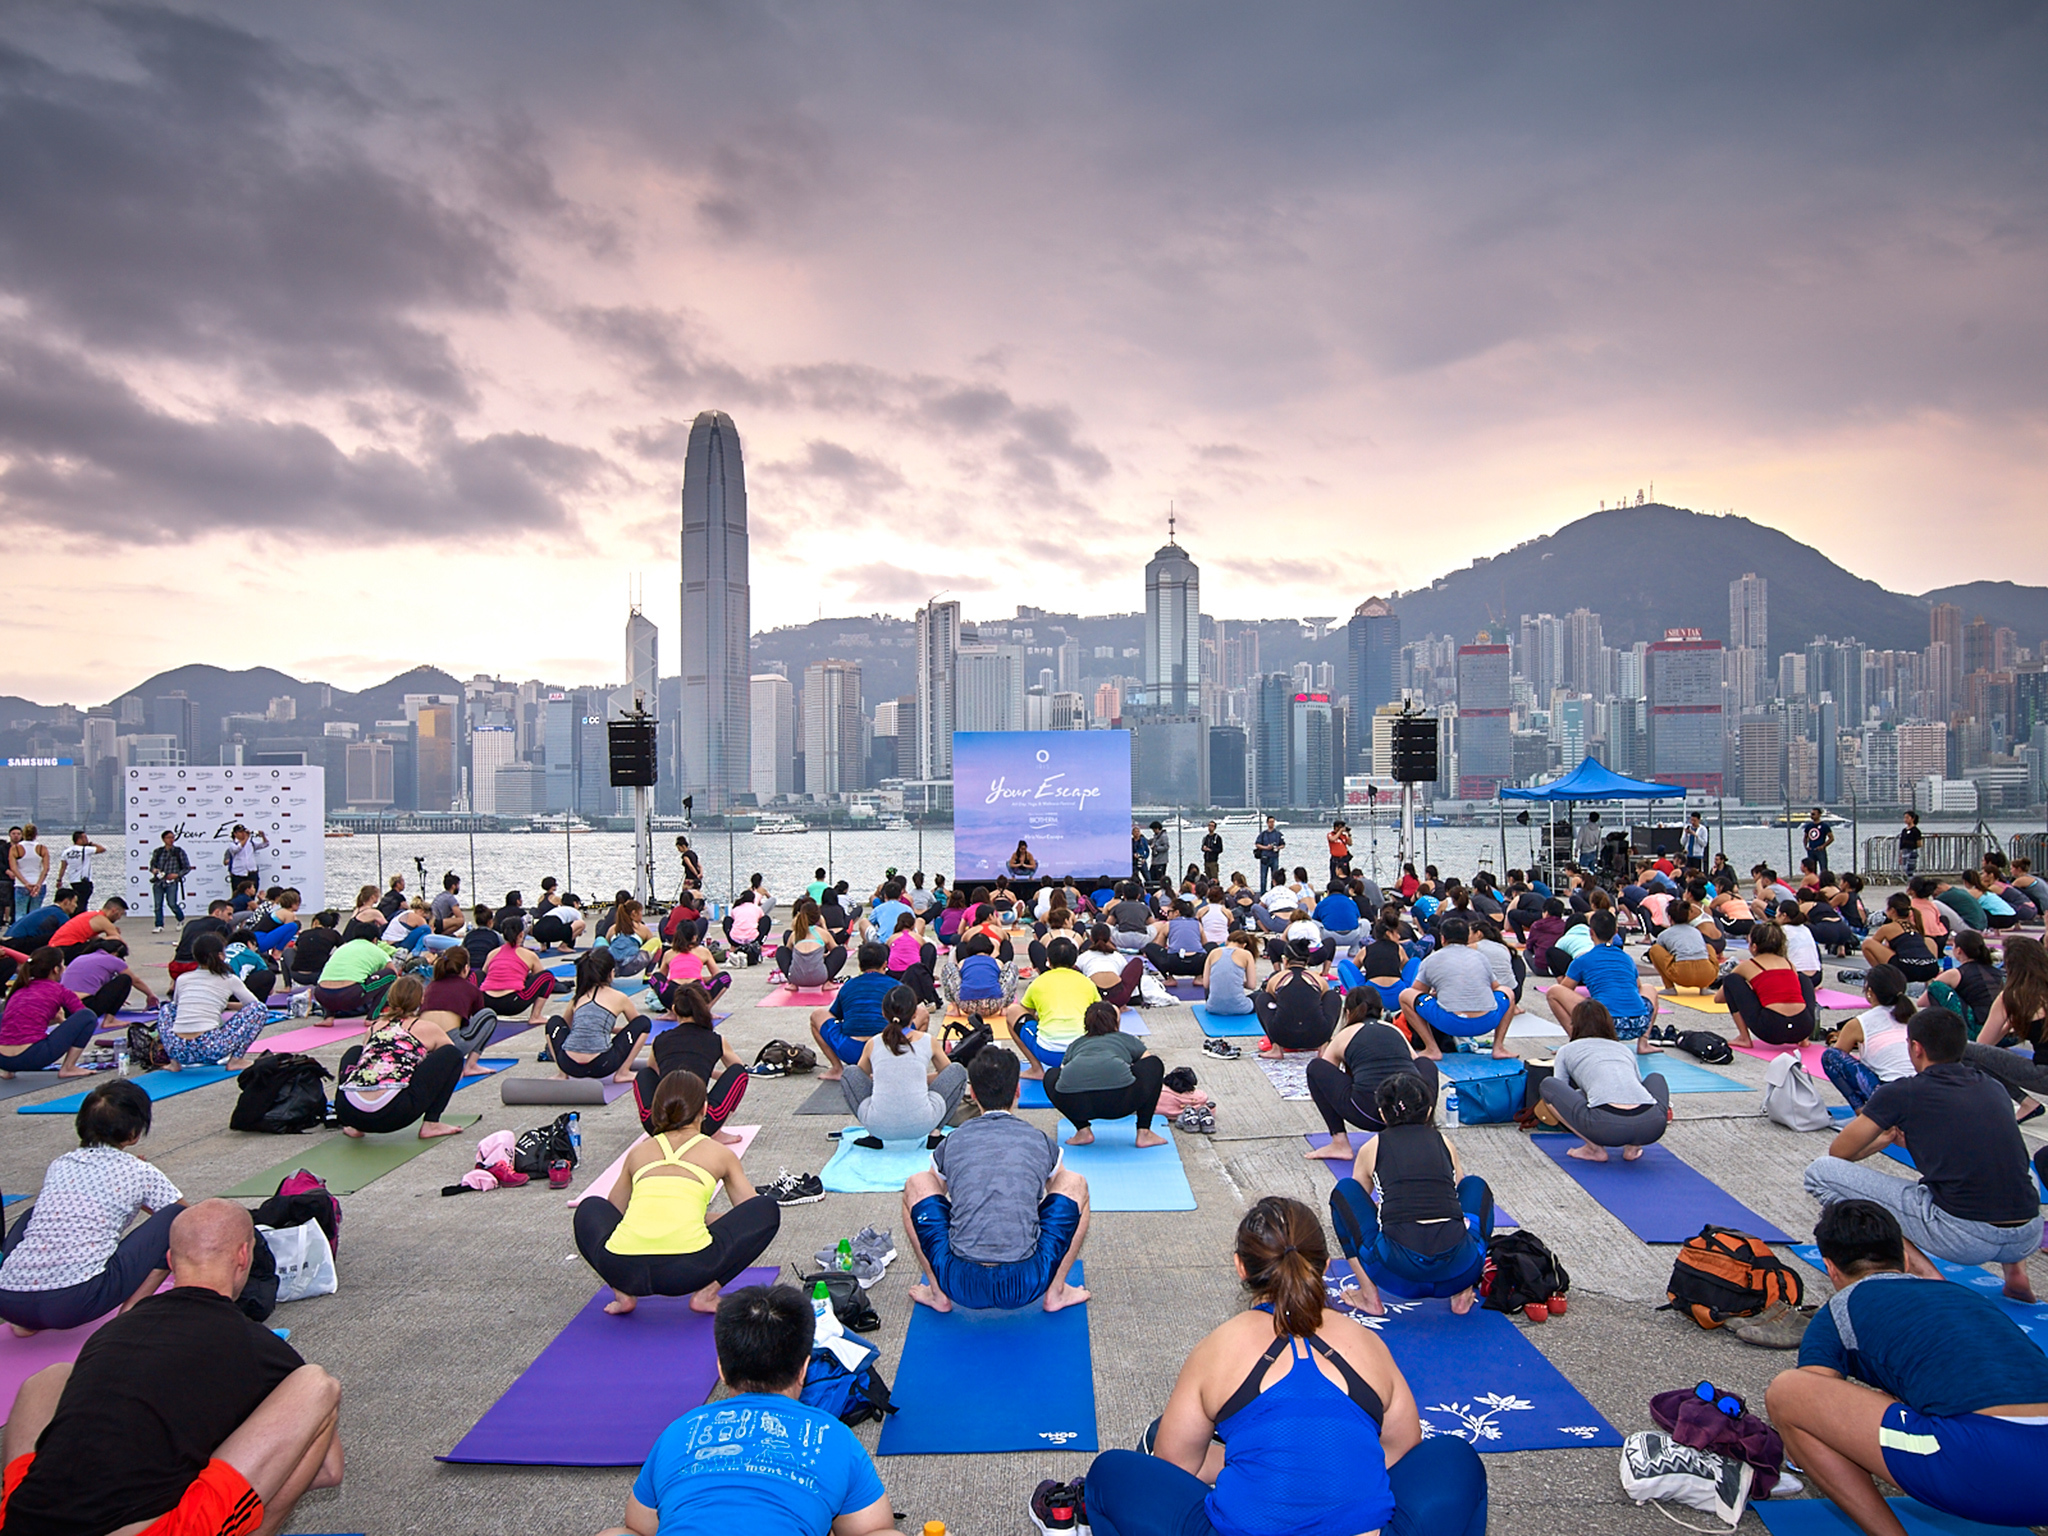 Things to do in Hong Kong - events, attractions and activities